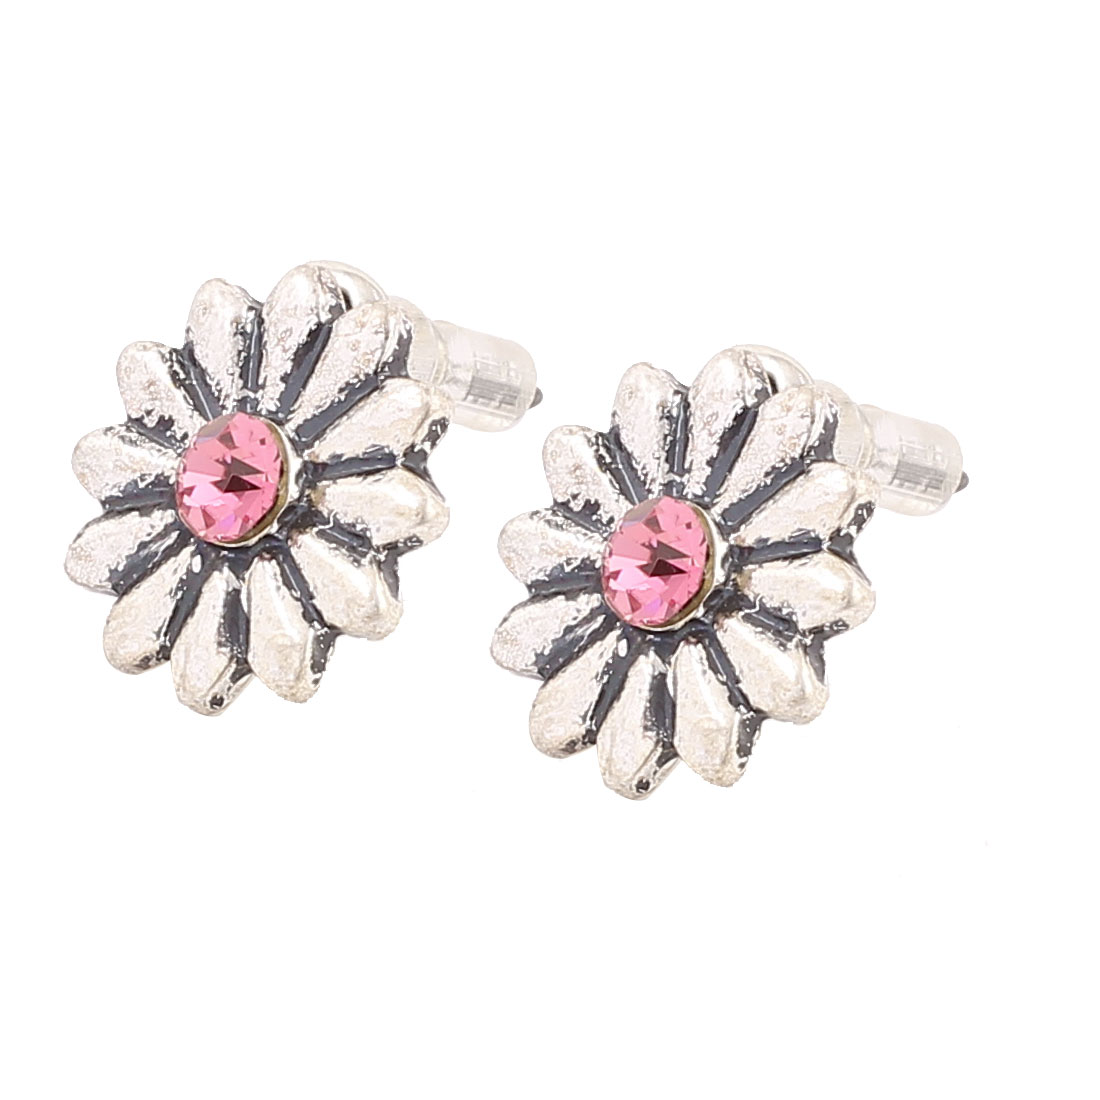 1.3CM Length Silver Tone Fuchsia Metal Flower Shape Rhinestone Inlaided Pierced Stud Pin Ear Nail Earrings Earbobs for Lady Women